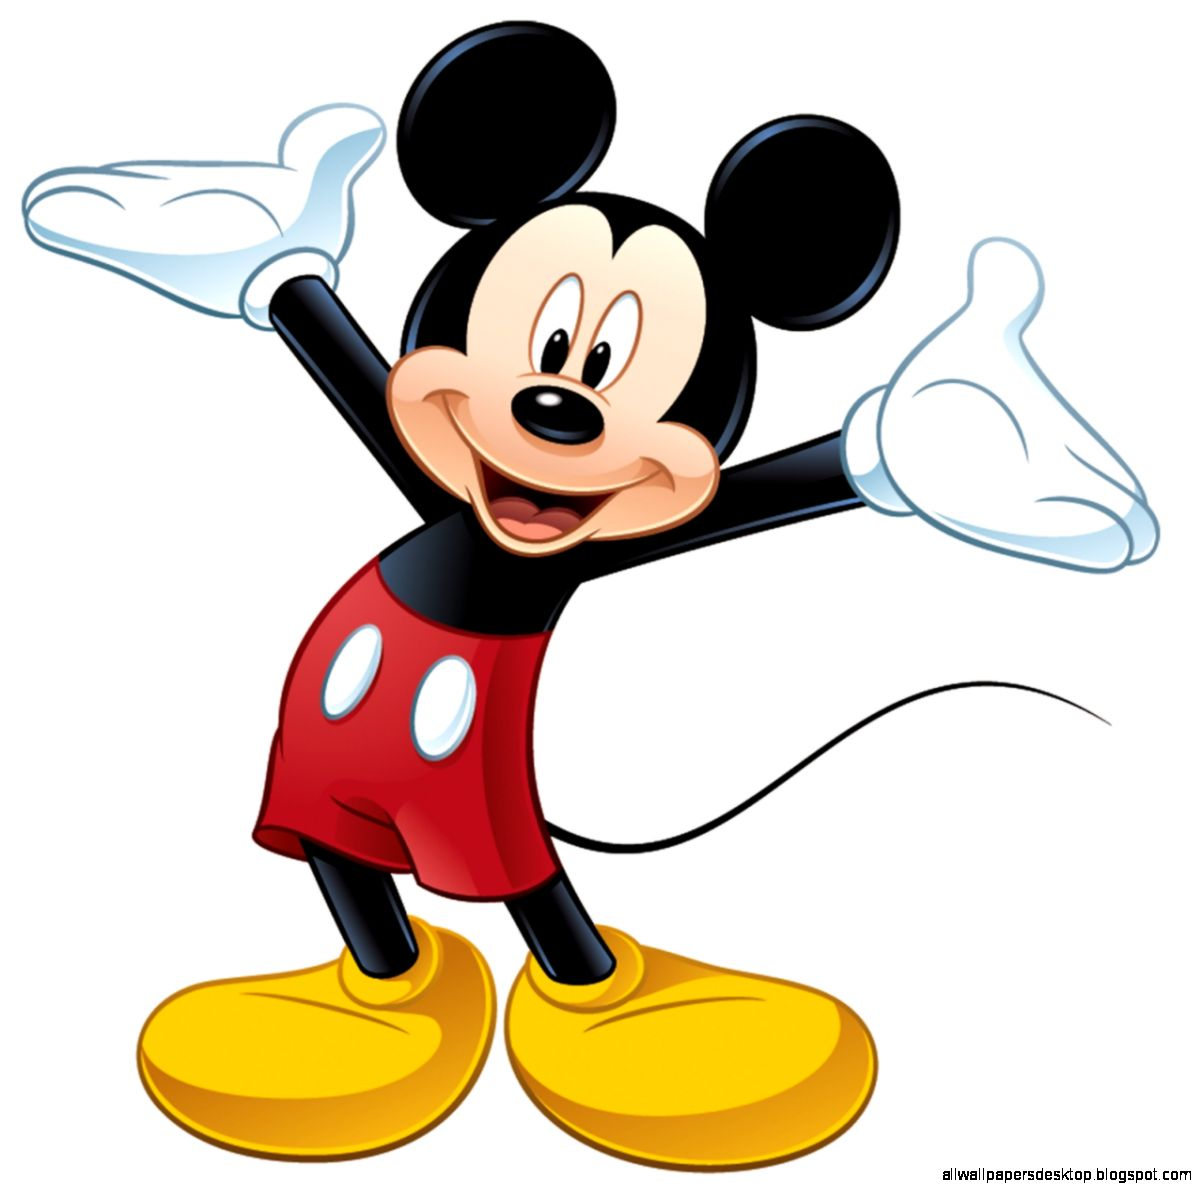 Download   Wallpaper Home Screen Mickey Mouse - mickey-mouse-cartoon-pictures-photos-14081-full-hd-wallpaper  You Should Have_834869.jpg